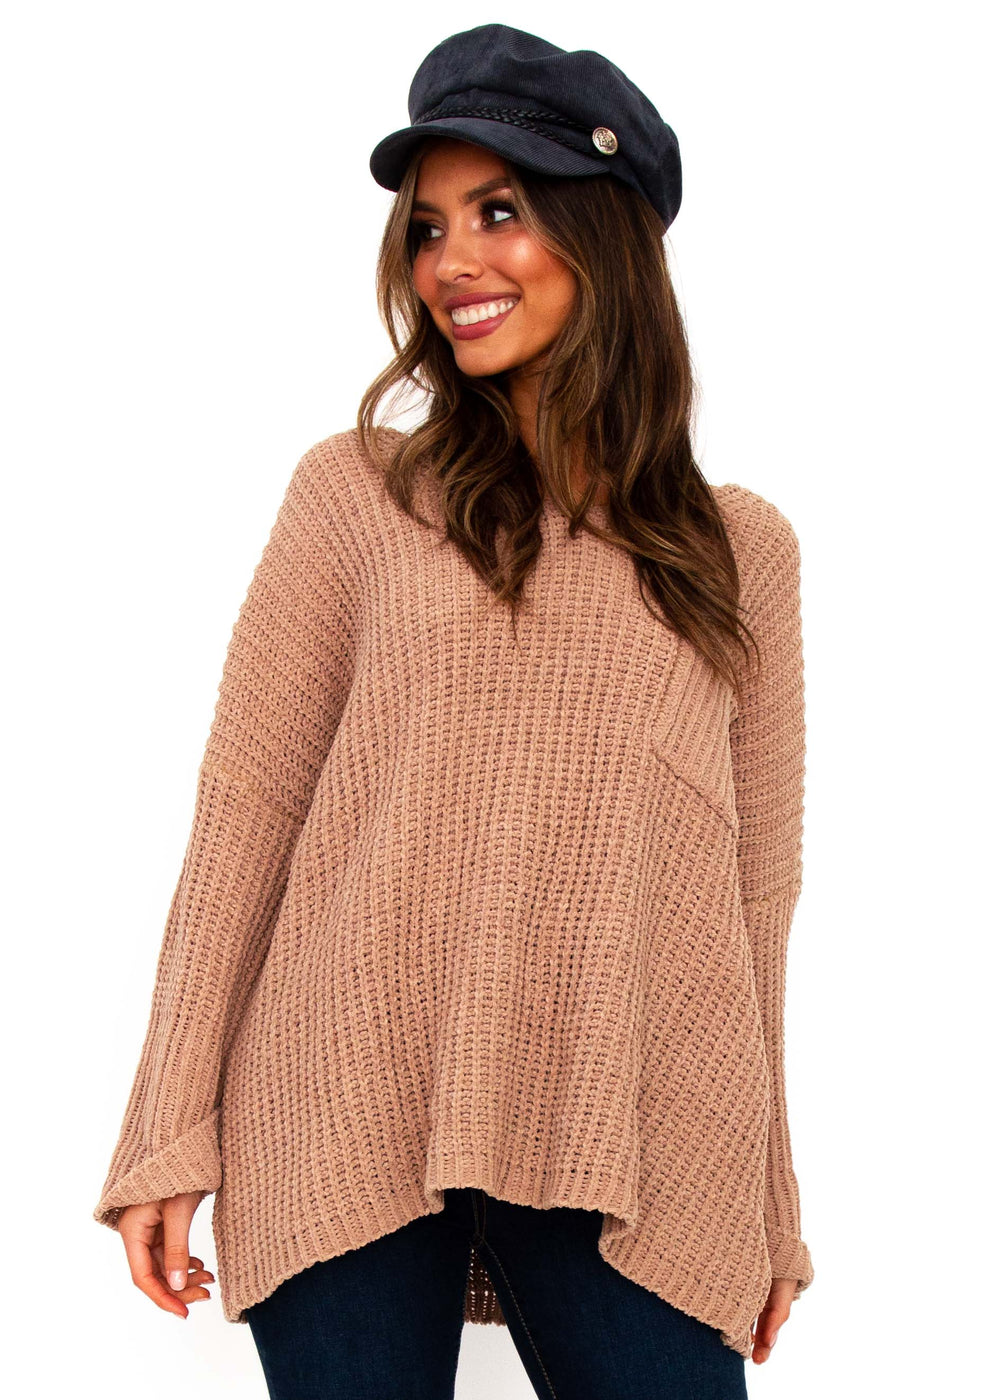 Women's Mikey Sweater - Tan